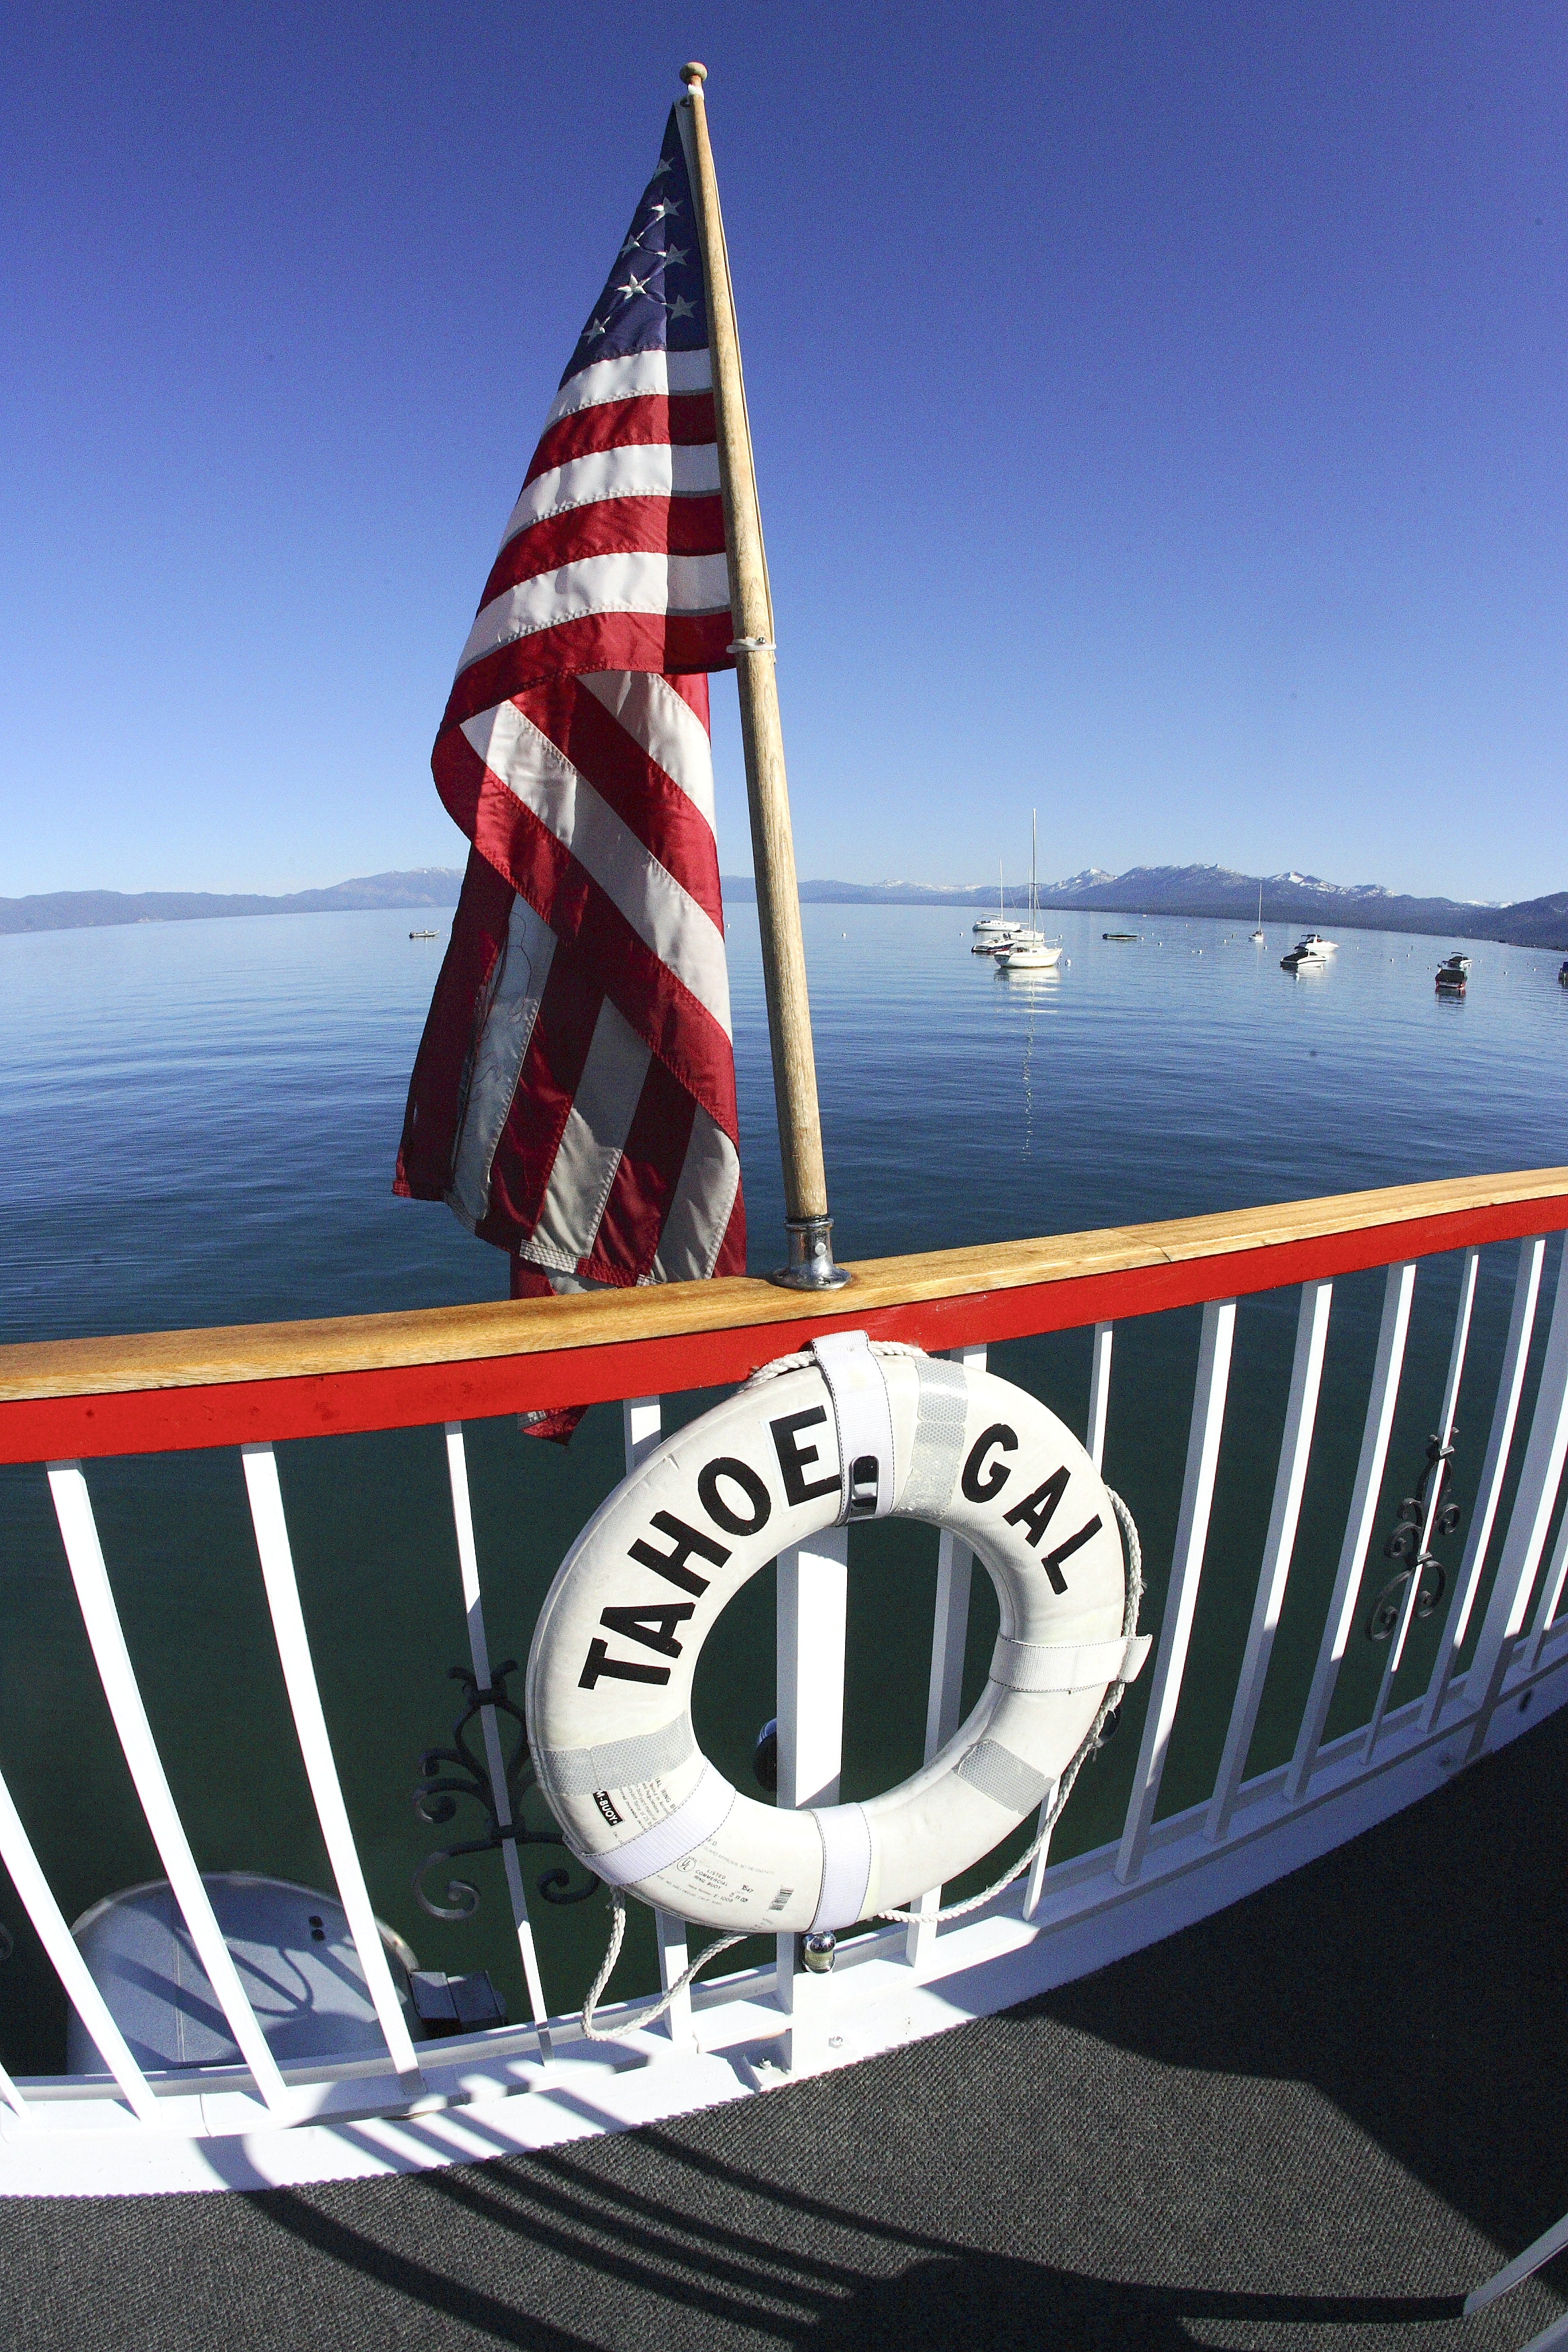 Tahoe Gal lifebuoy with American flag for Cruise Lake Tahoe